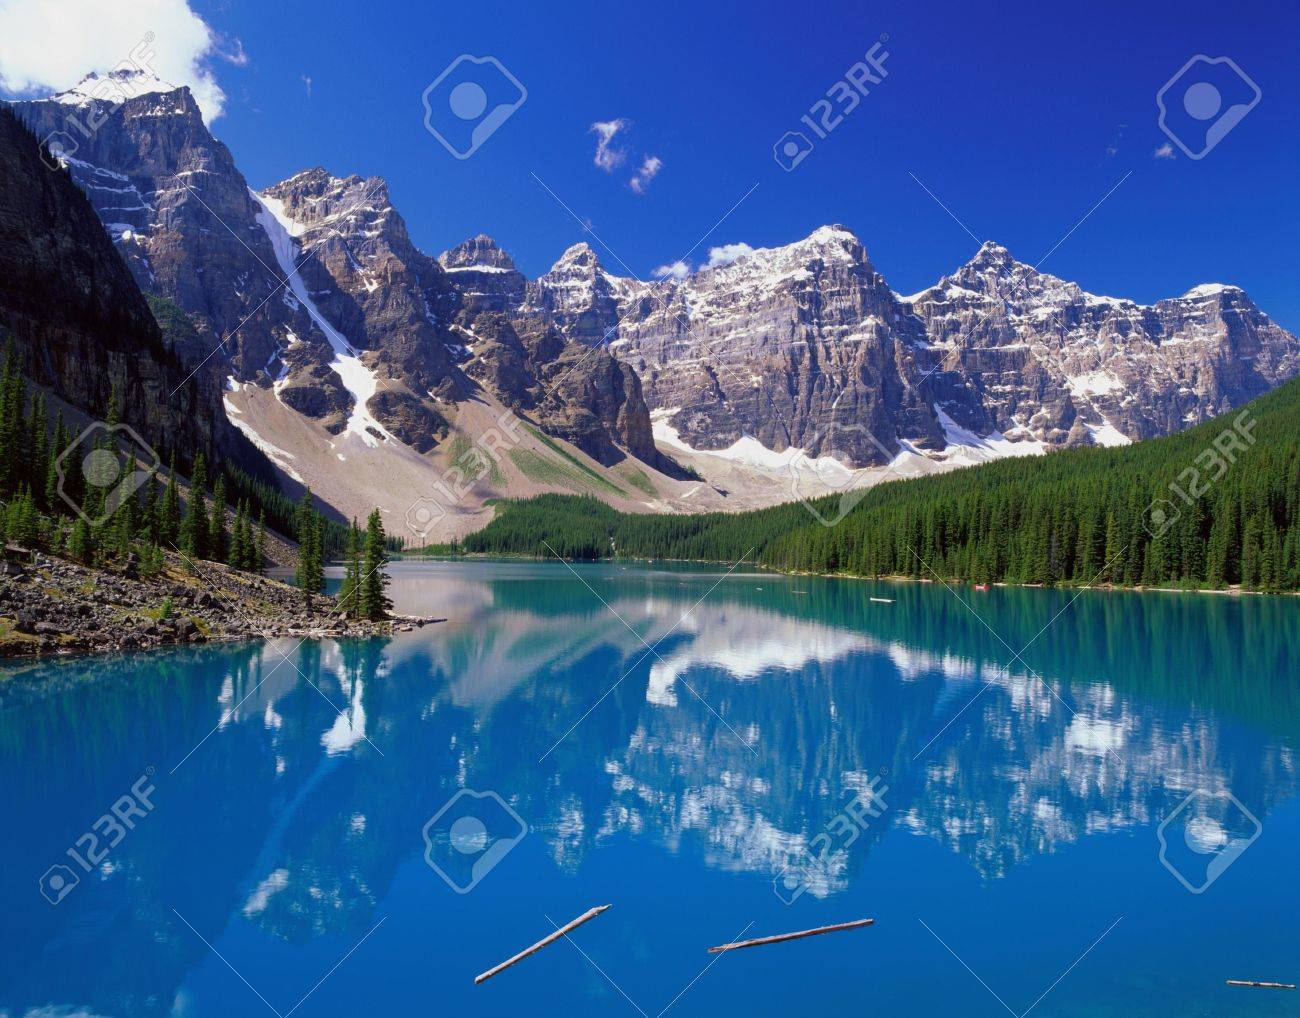 Beautiful blue lake in the mountains with green trees on the shore Stock Photo - 4397617